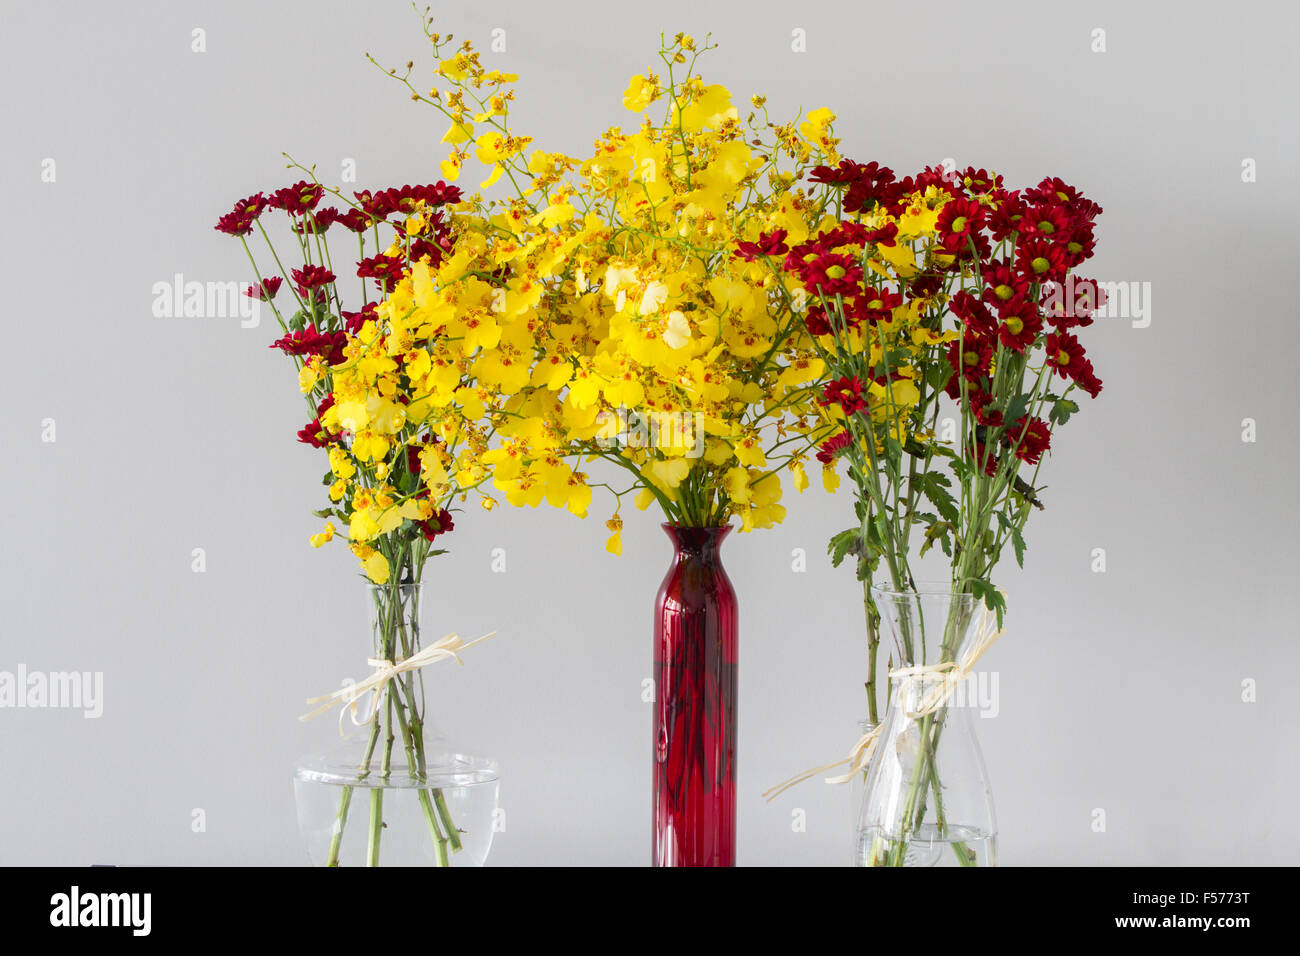 Red chrysanthemum flowers with yellow centres in transparent glass red chrysanthemum flowers with yellow centres in transparent glass vases of different shapes and yellow flowers in red vase over reviewsmspy